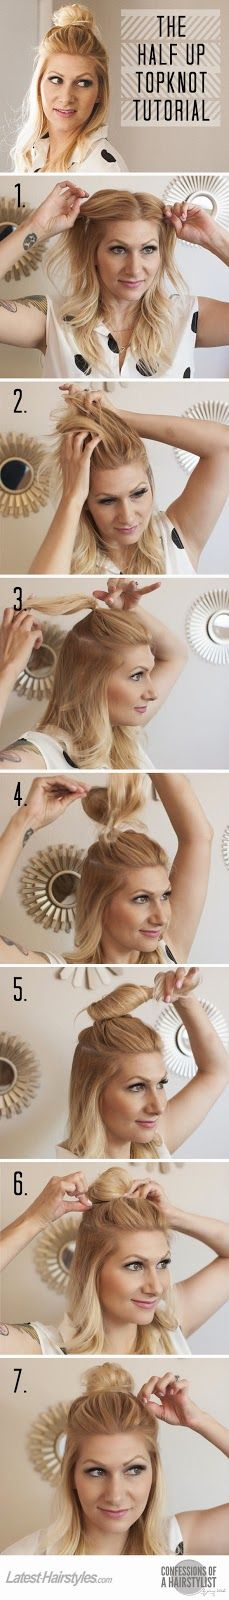 Confessions of a Hairstylist Hair Blog by Jenny Strebe: Trend Alert!! Half Up Top Knot